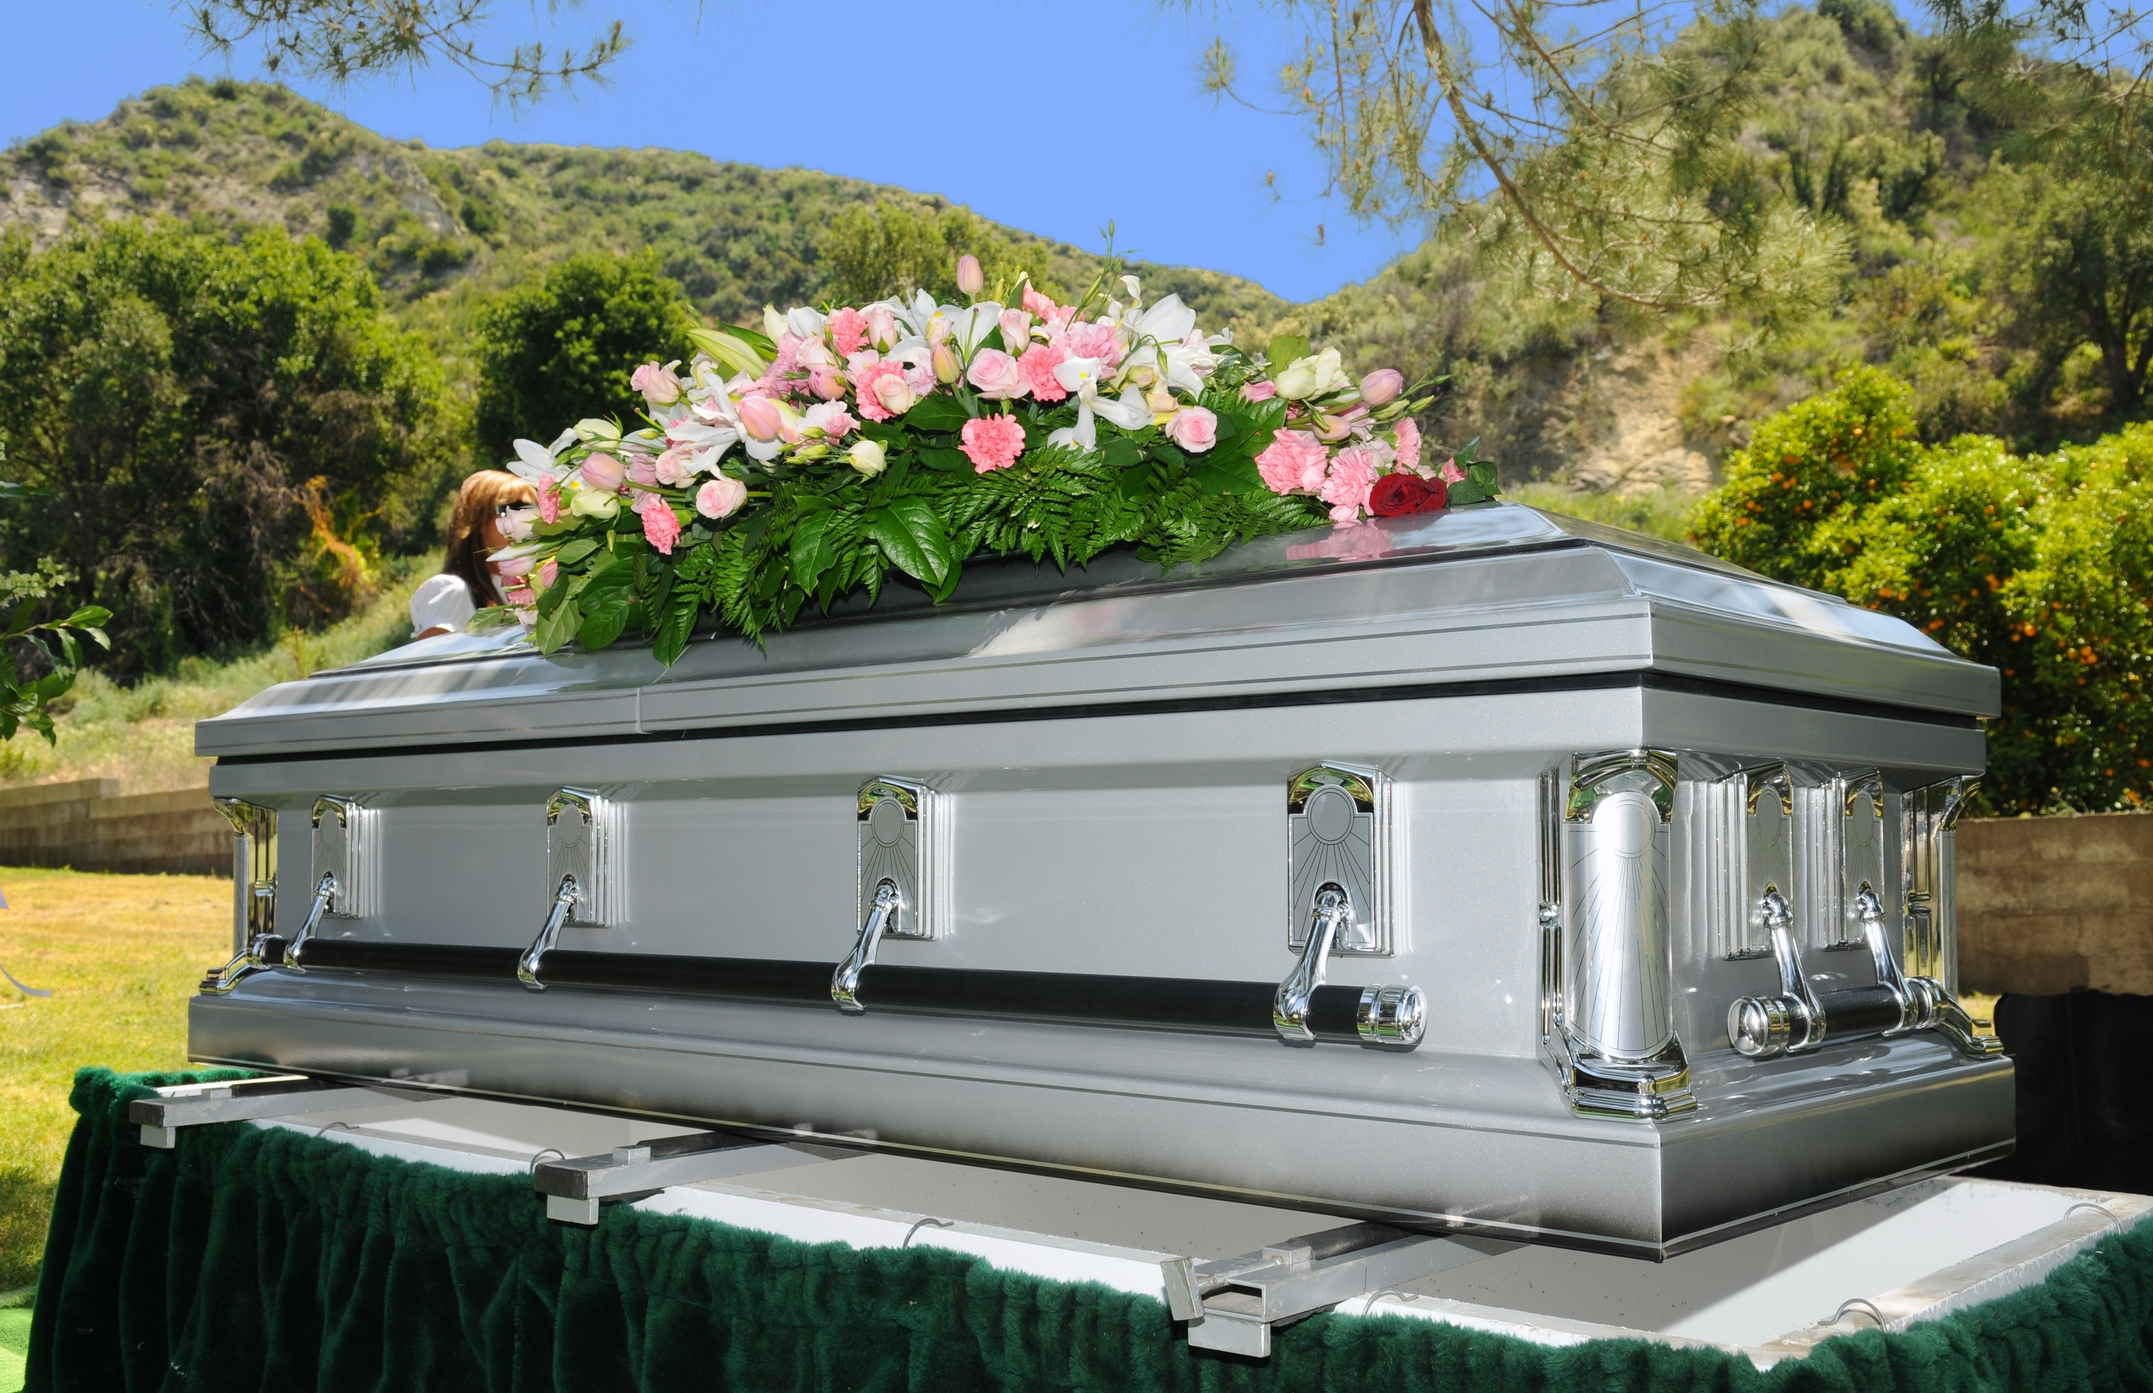 immage of coffin at funeral